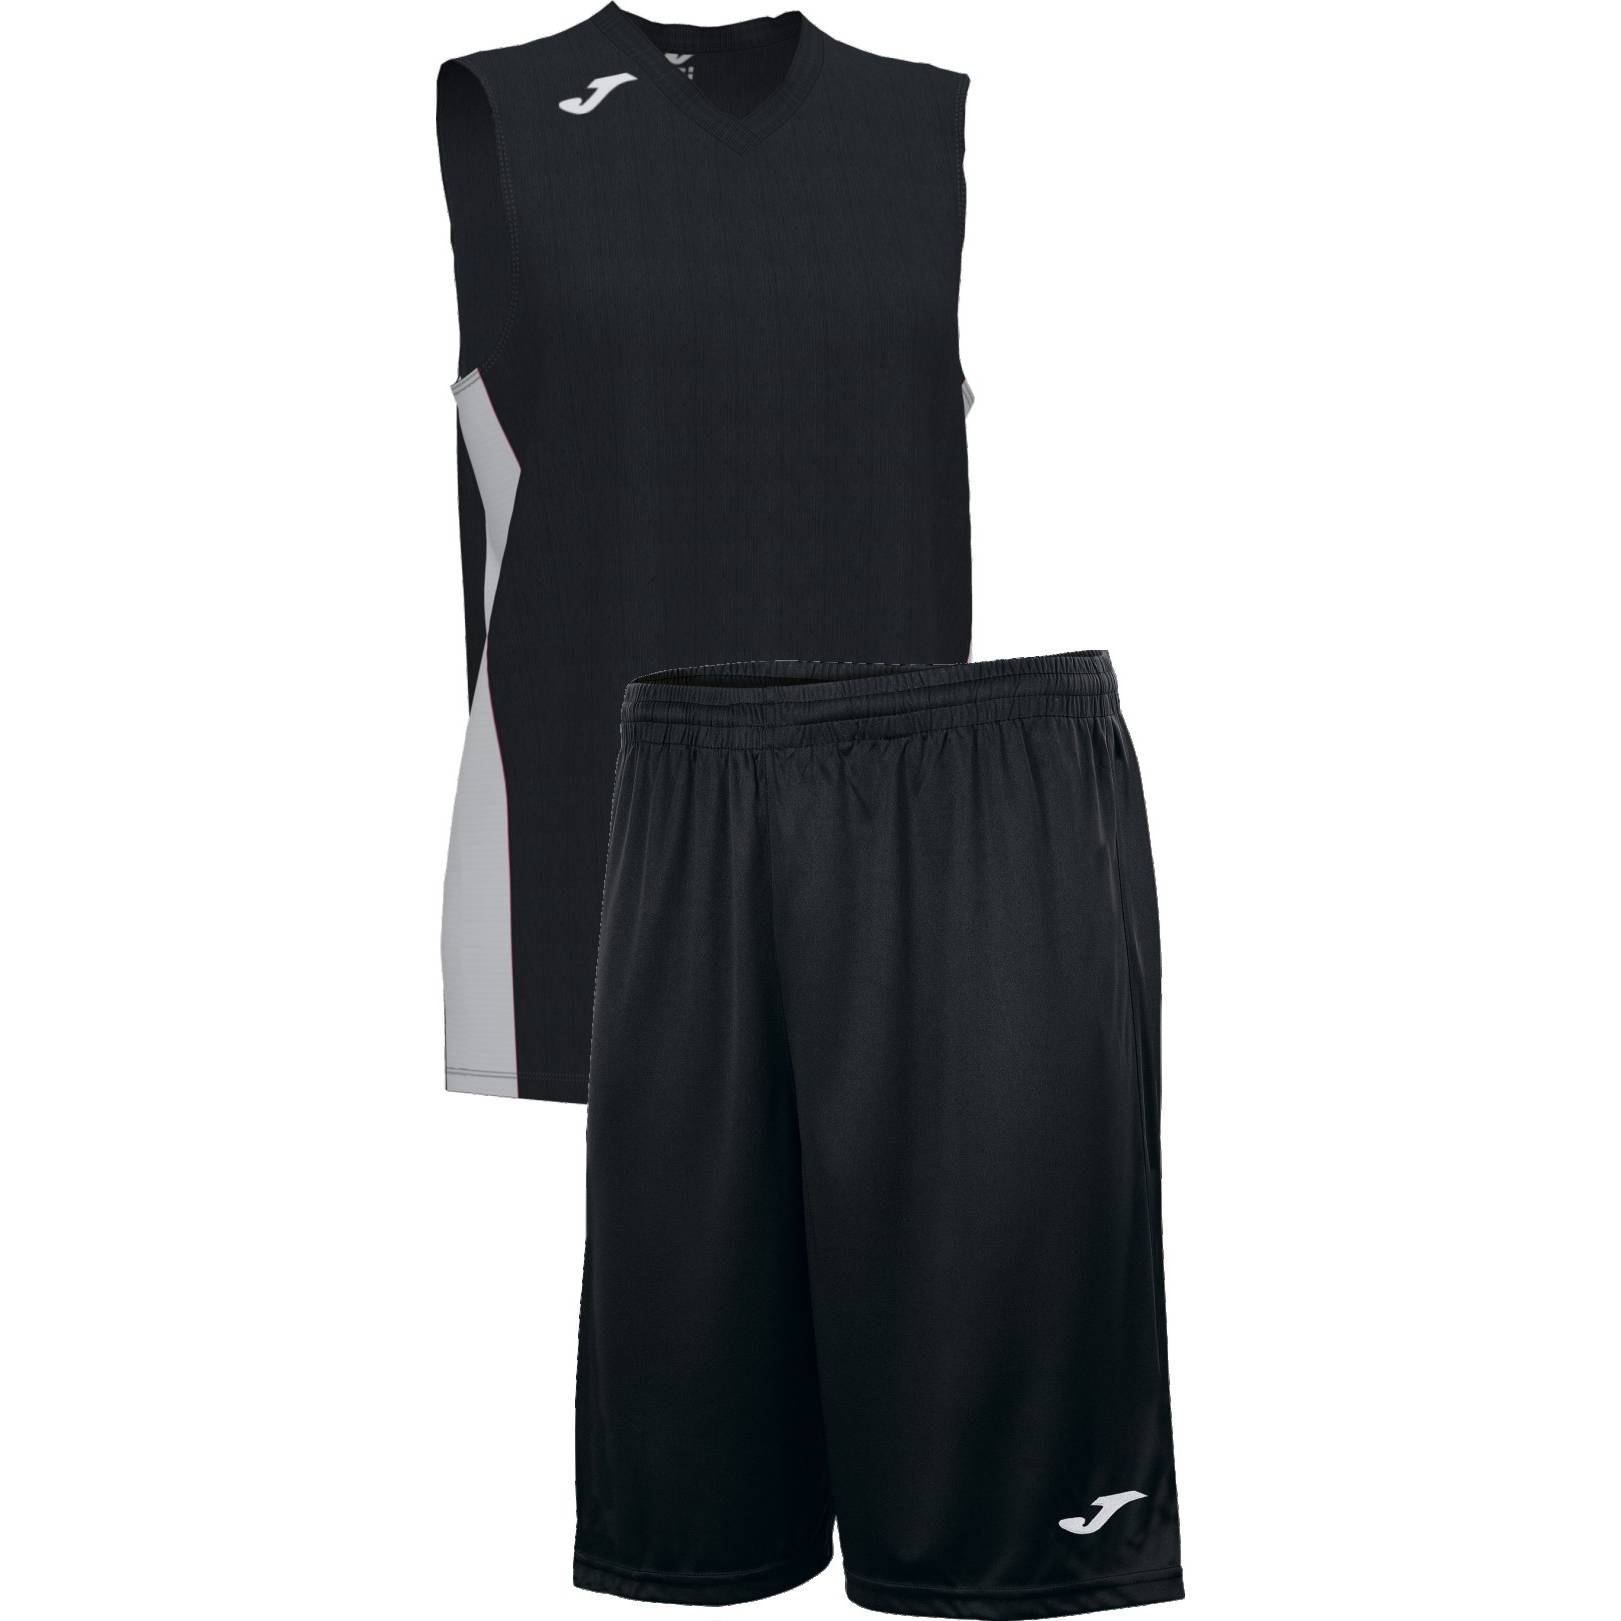 Teamwear - Joma Cancha Sleeveless  & Nobel Long Shorts Set - Black/White - JO-101573-102-101648-White